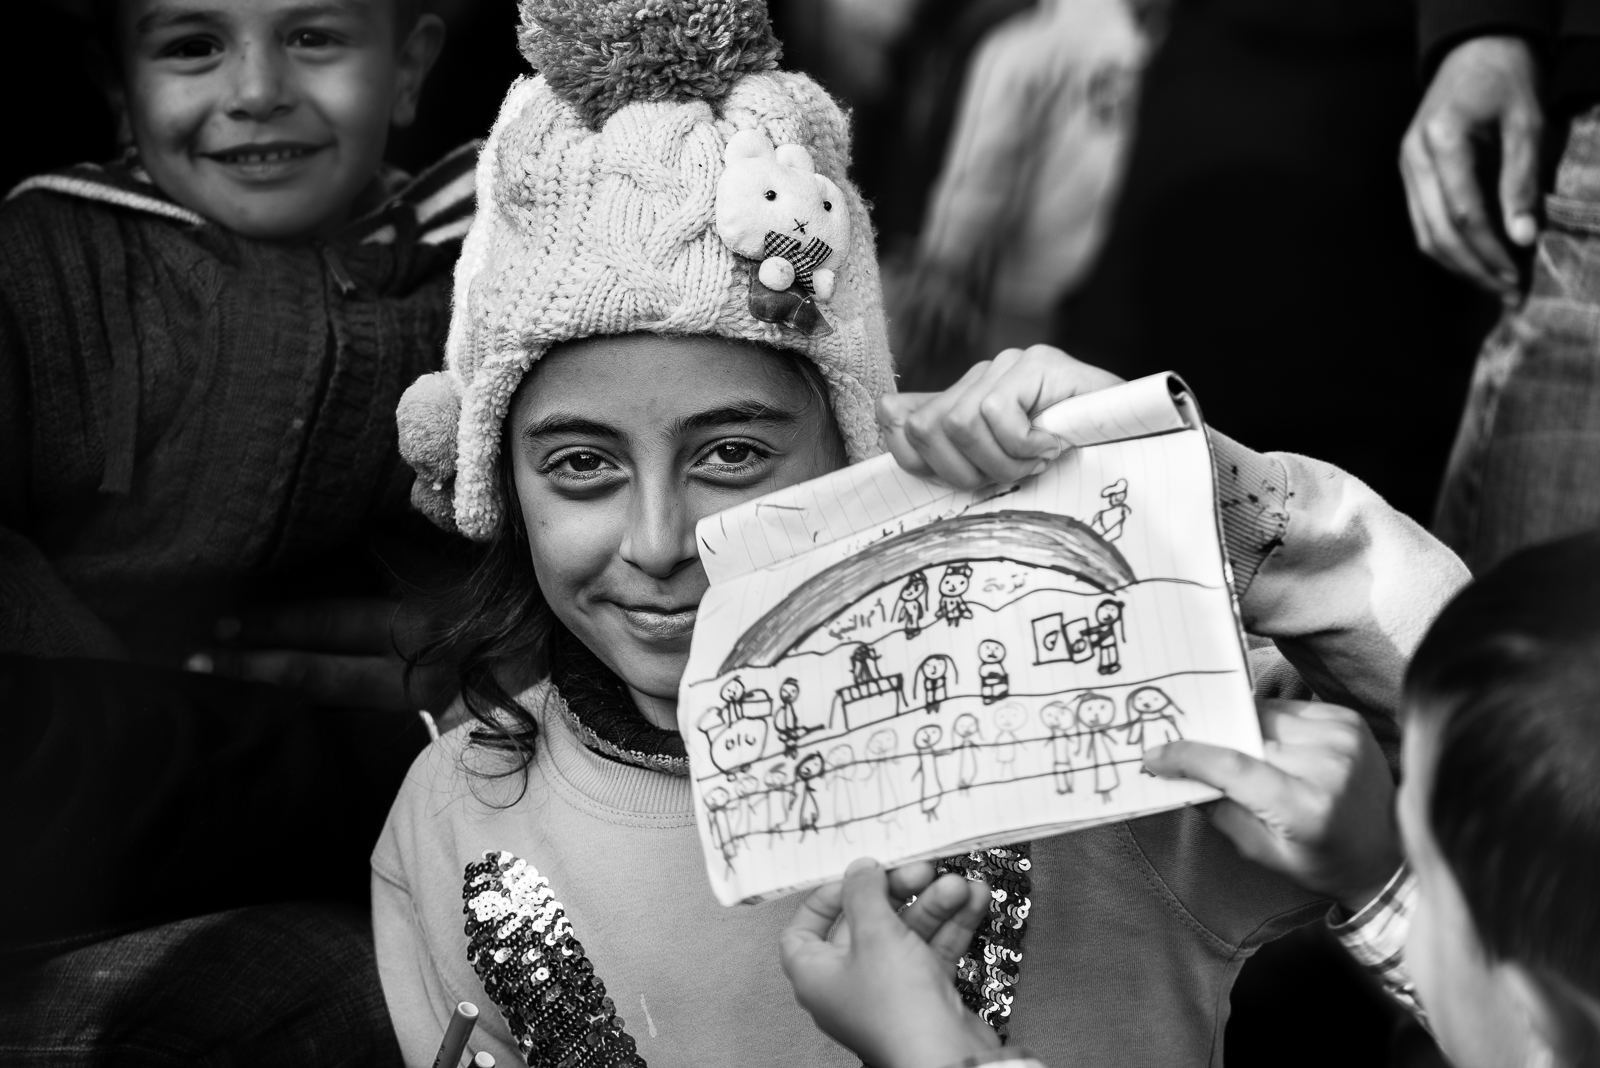 The draw of a little syrian girl inside a camp